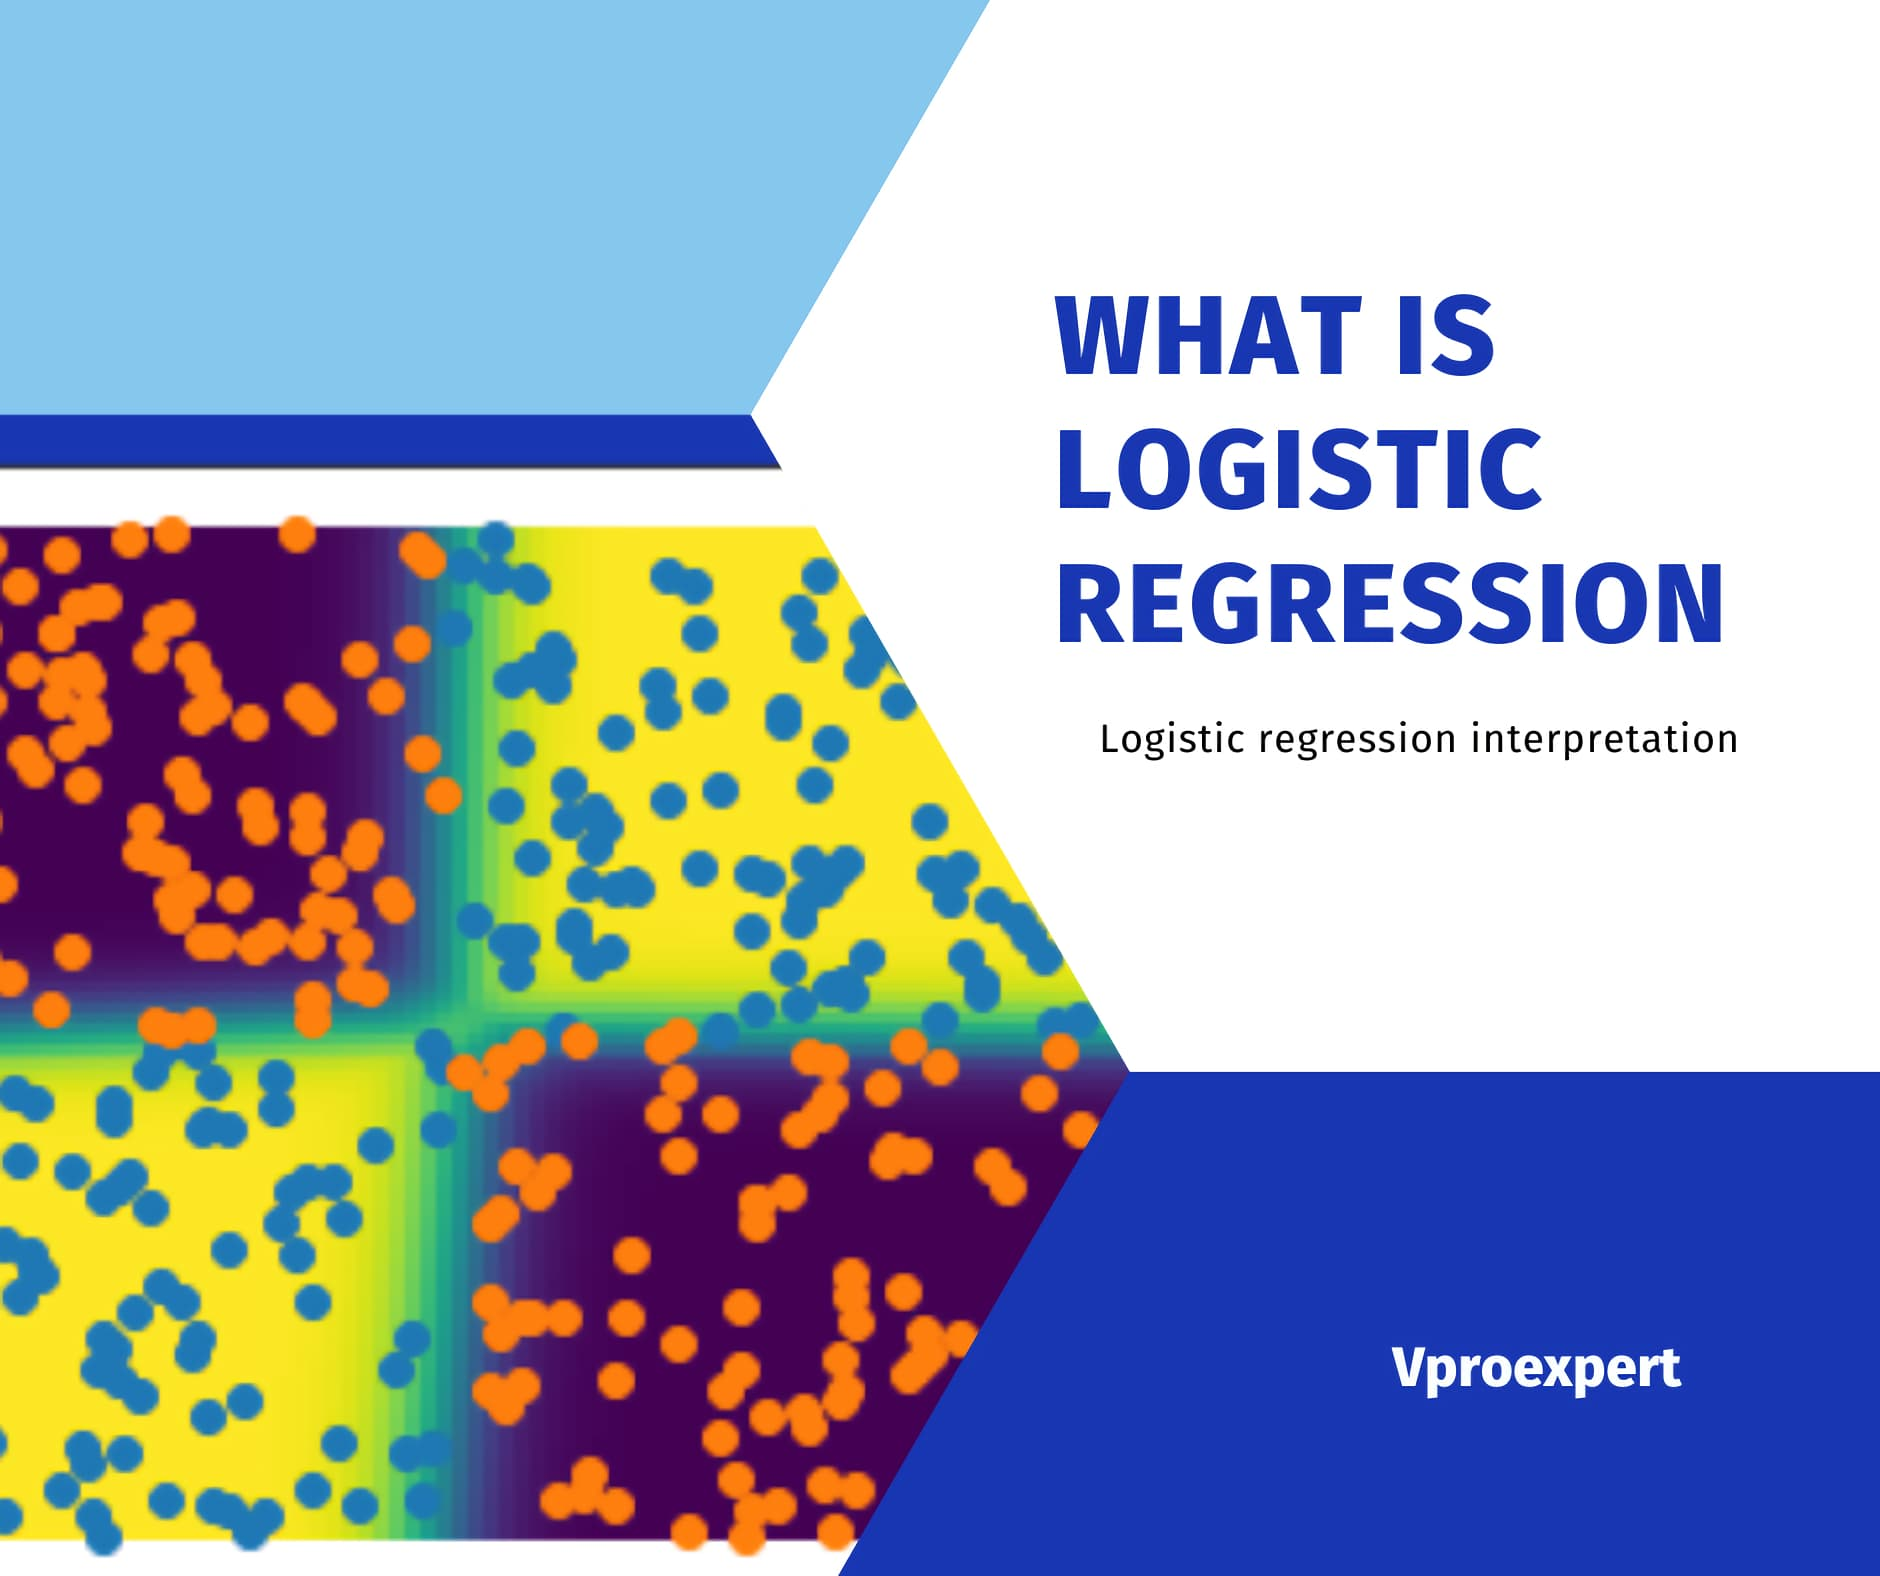 Logistic regression interpretation